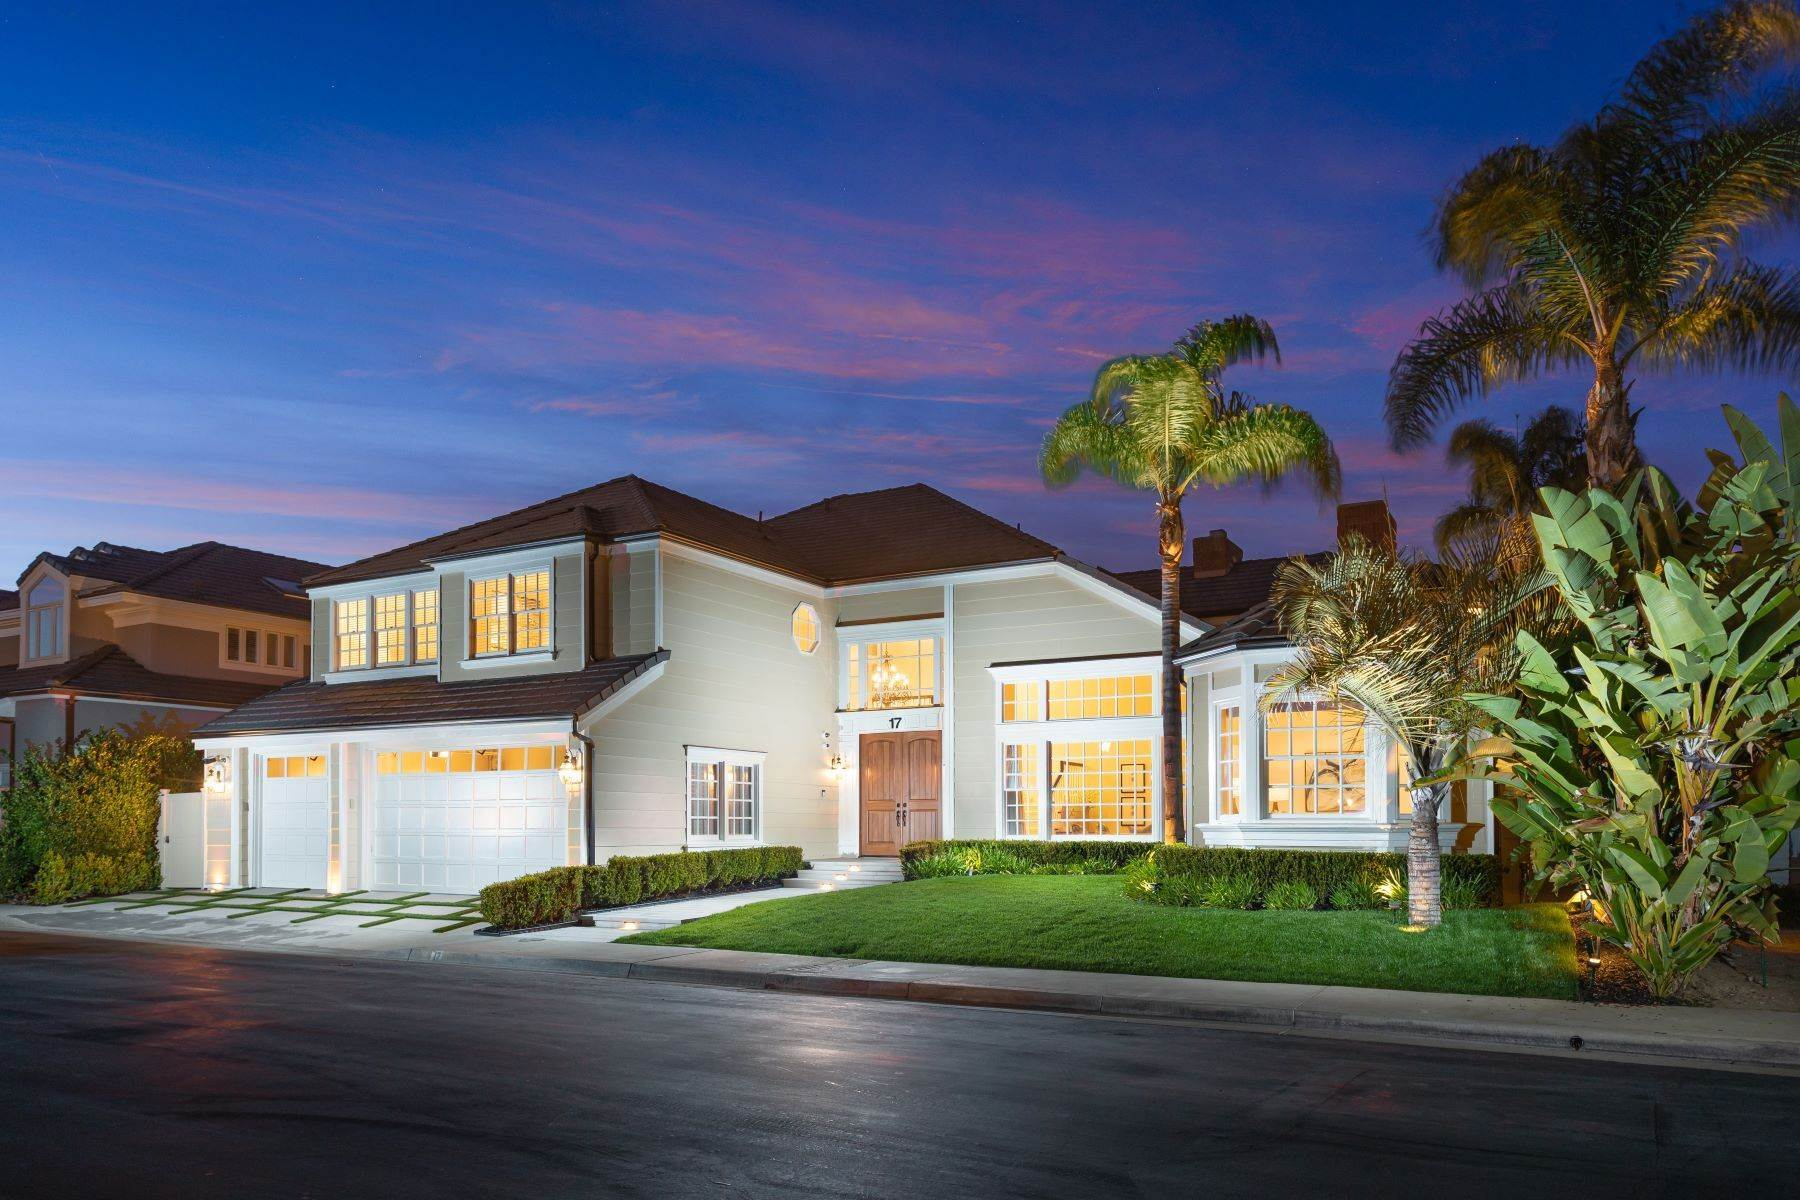 Single Family Homes for Sale at 17 Rockingham Drive Newport Beach, California 92660 United States